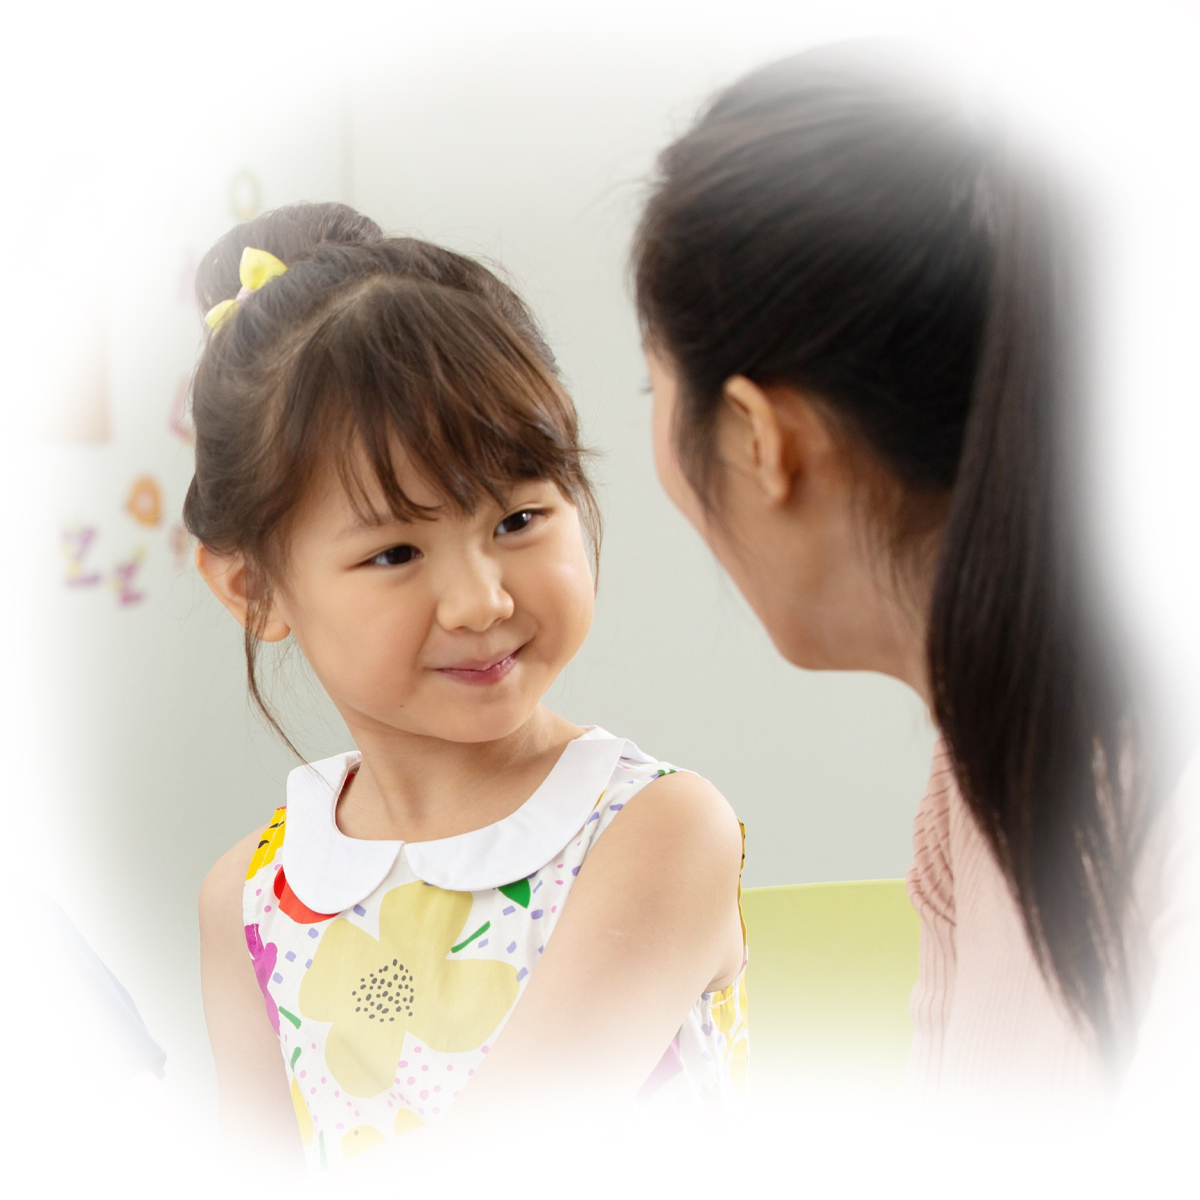 chinese enrichment for kids, chinese enrichment for toddlers